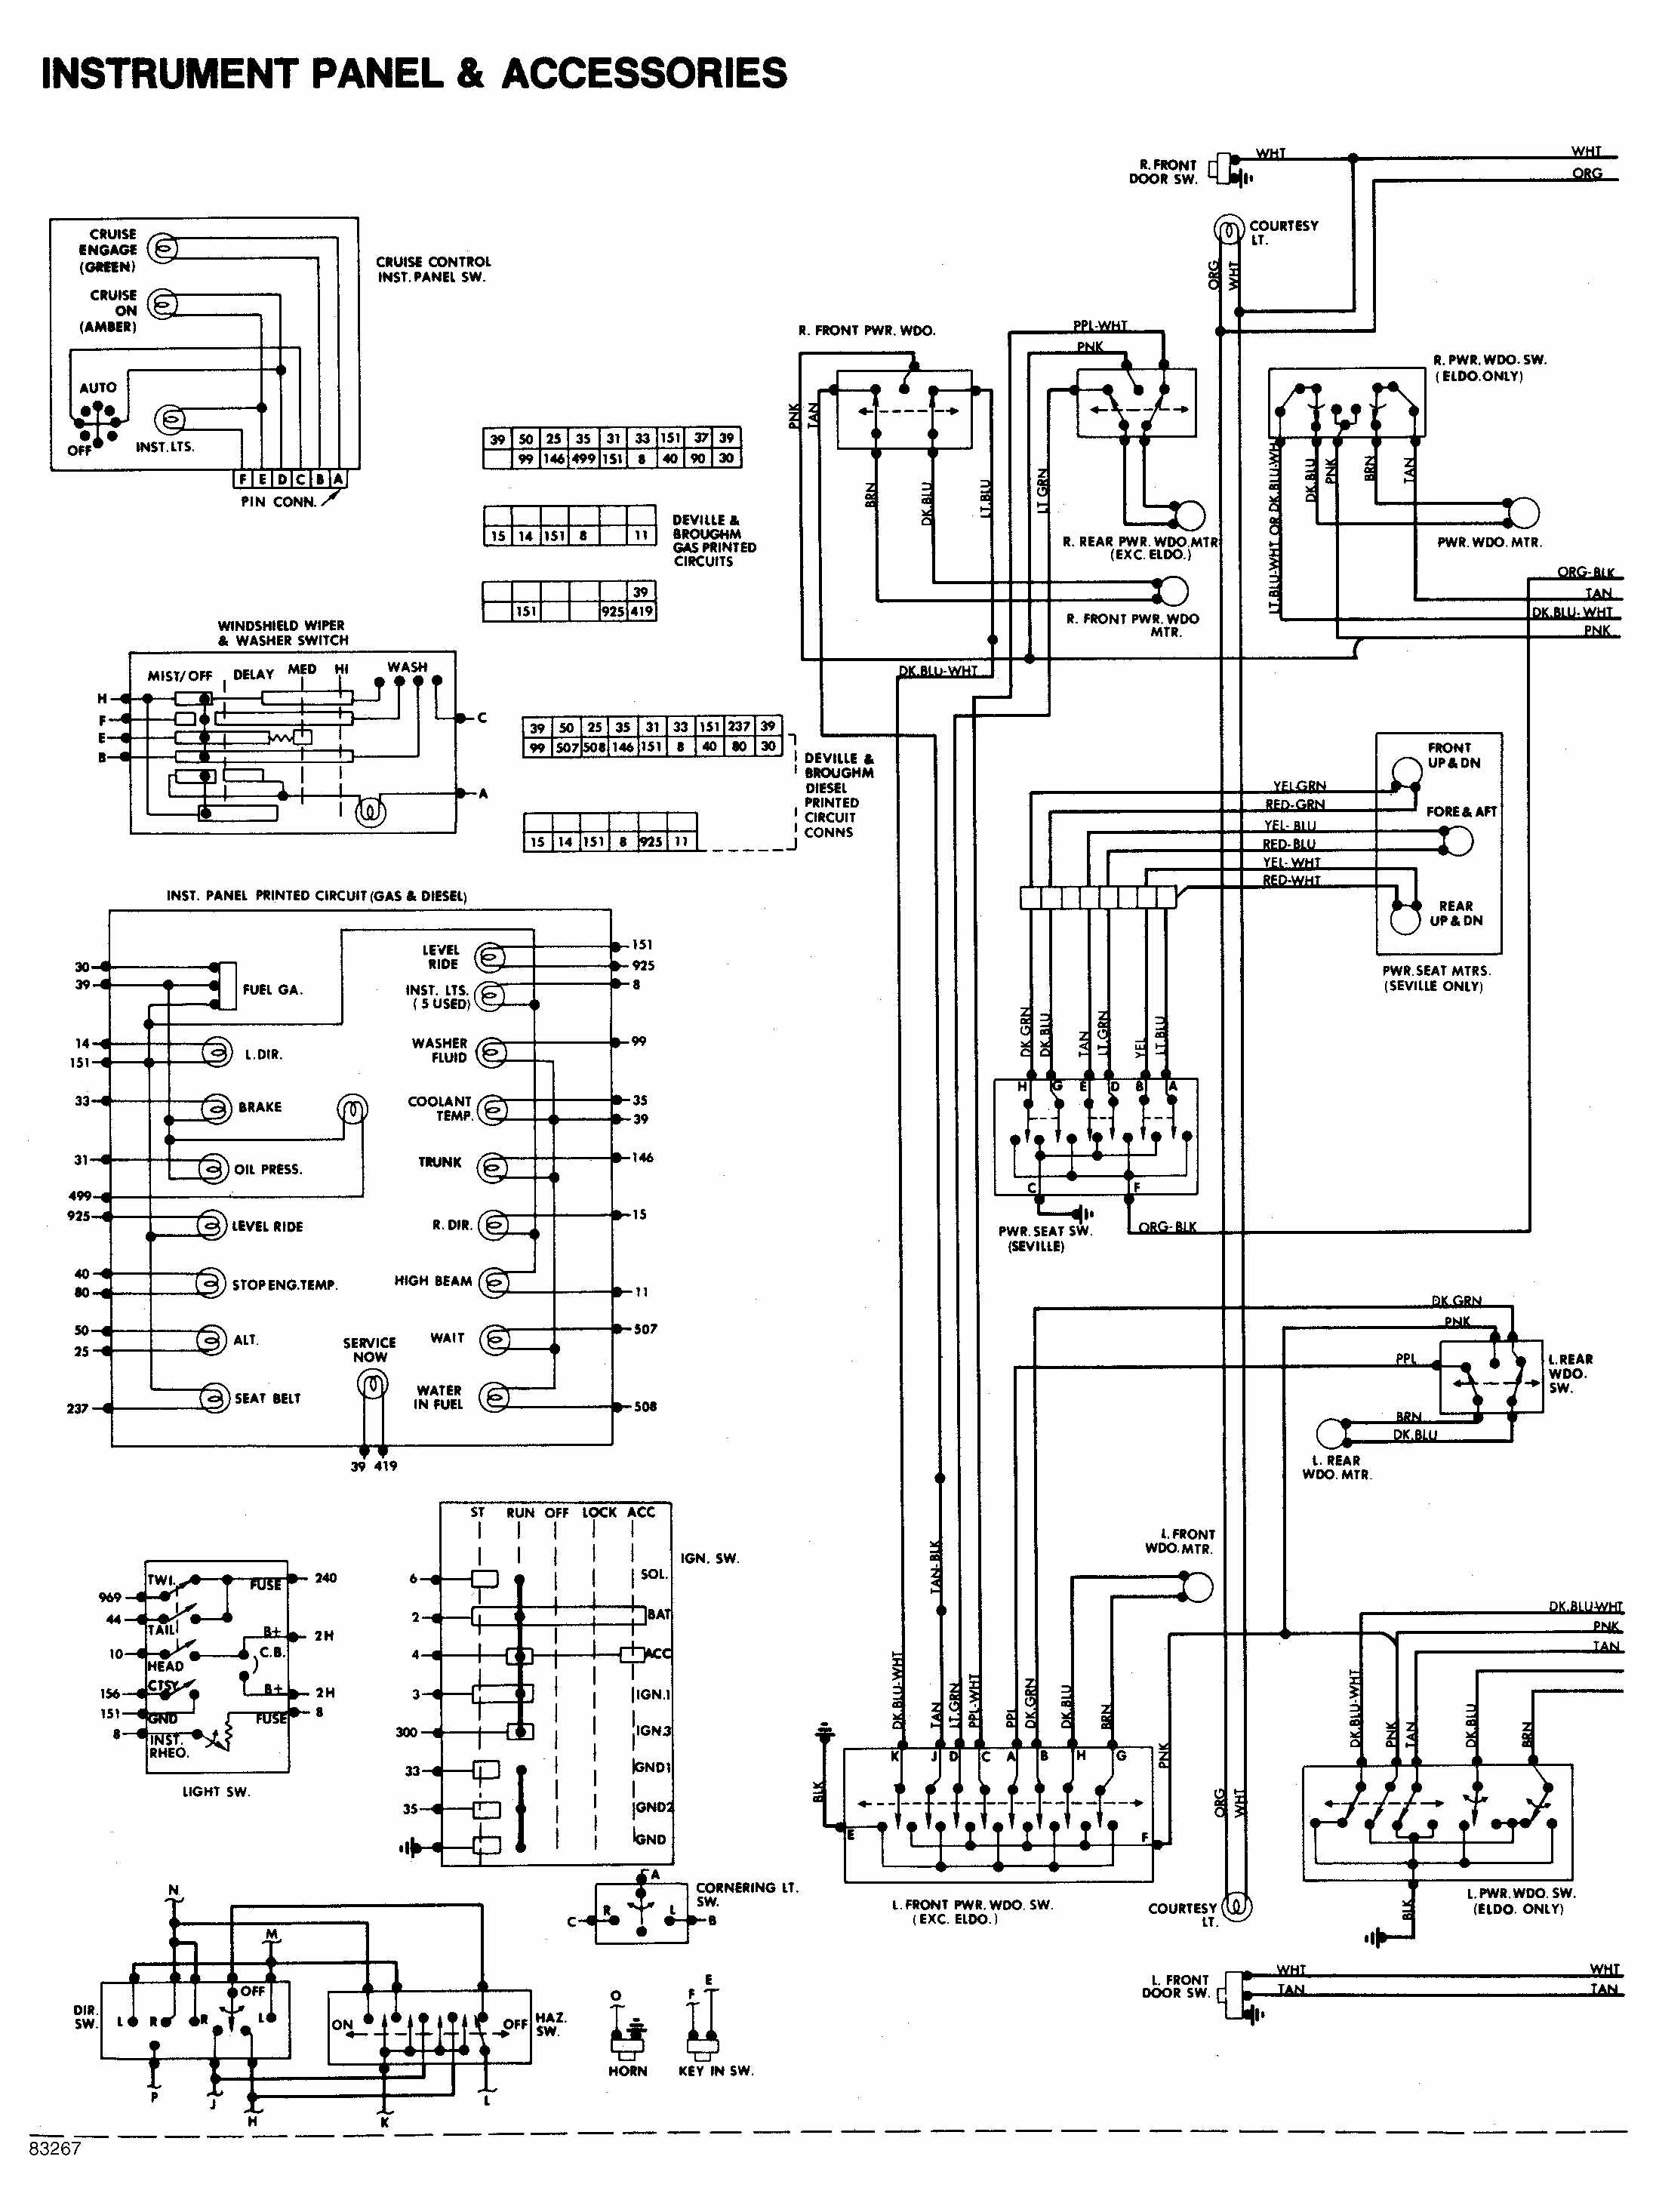 2002 accord wiring diagram